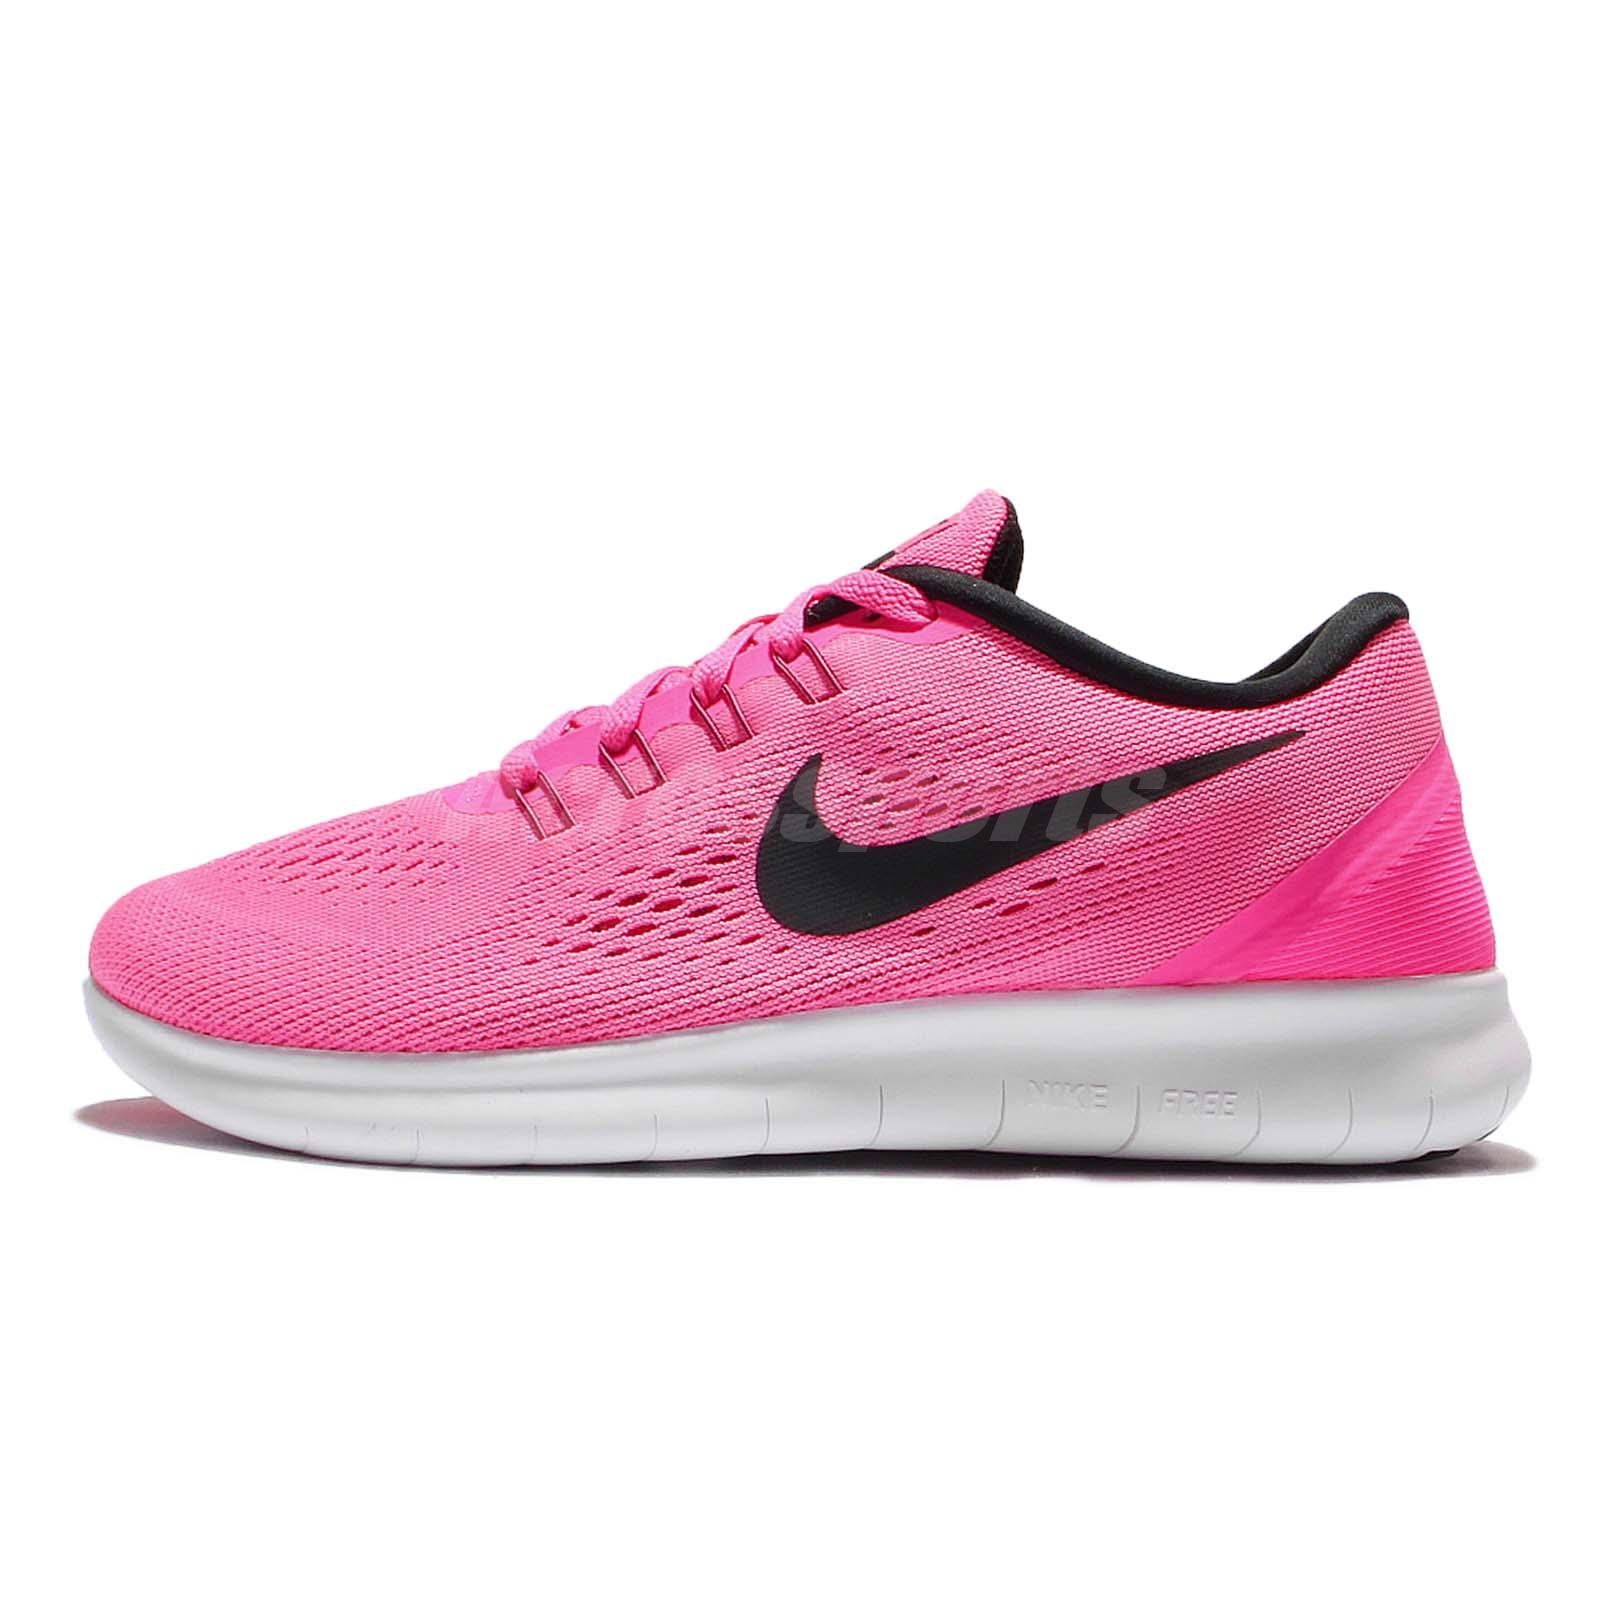 06585c157347 Wmns Nike Free RN Run Pink Black Womens Running Shoes 831509-600